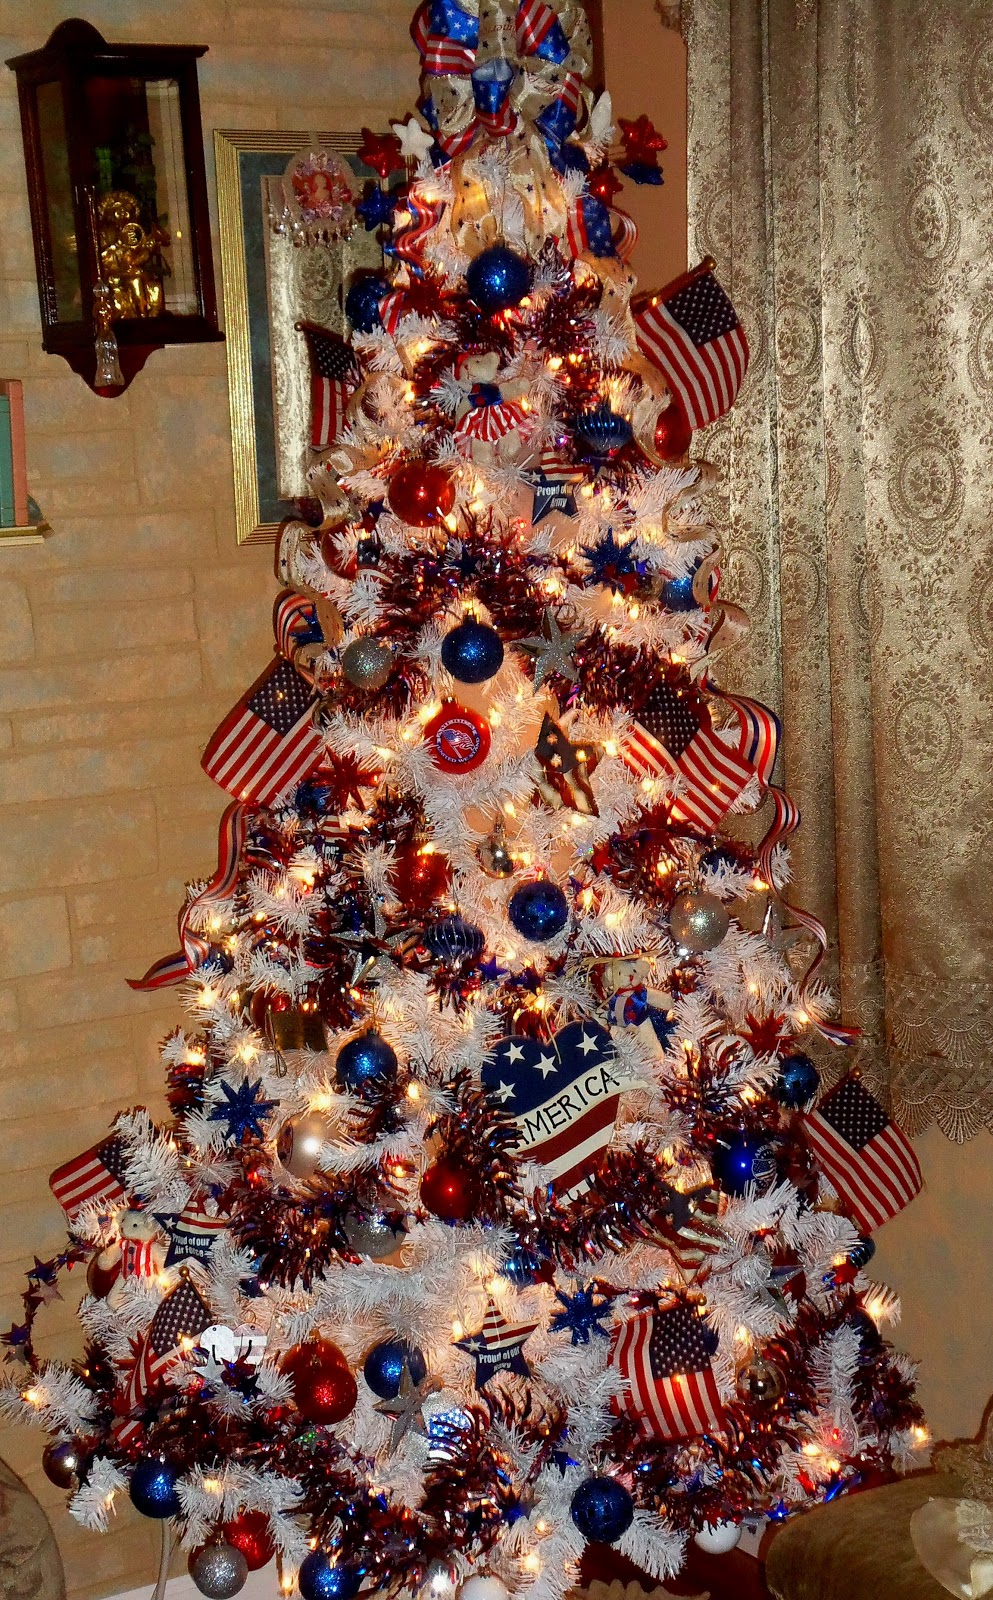 10 Unique Ways To Decorate Your Christmas Tree The Bajan